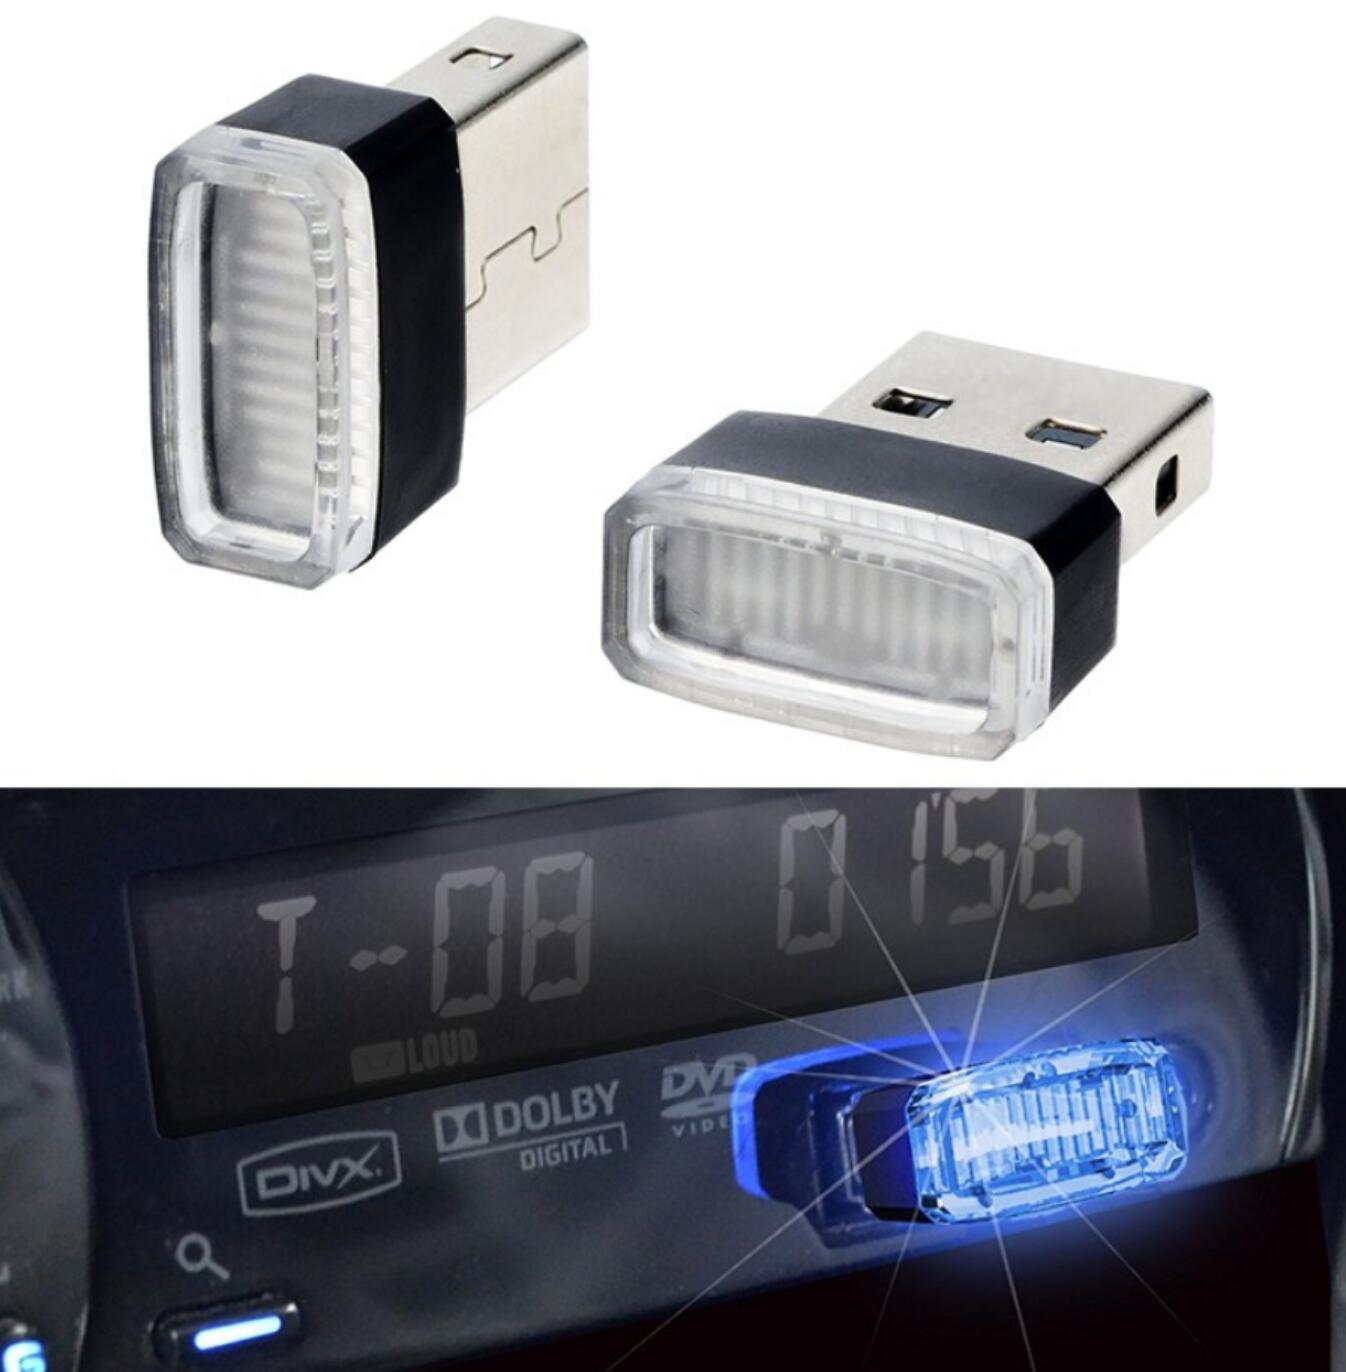 Honing 1 Pcs Auto-styling Usb Sfeer Led Licht Auto Accessoires Voor Peugeot 206 207 208 301 307 308 407 408 508 607 2008 3008 4008